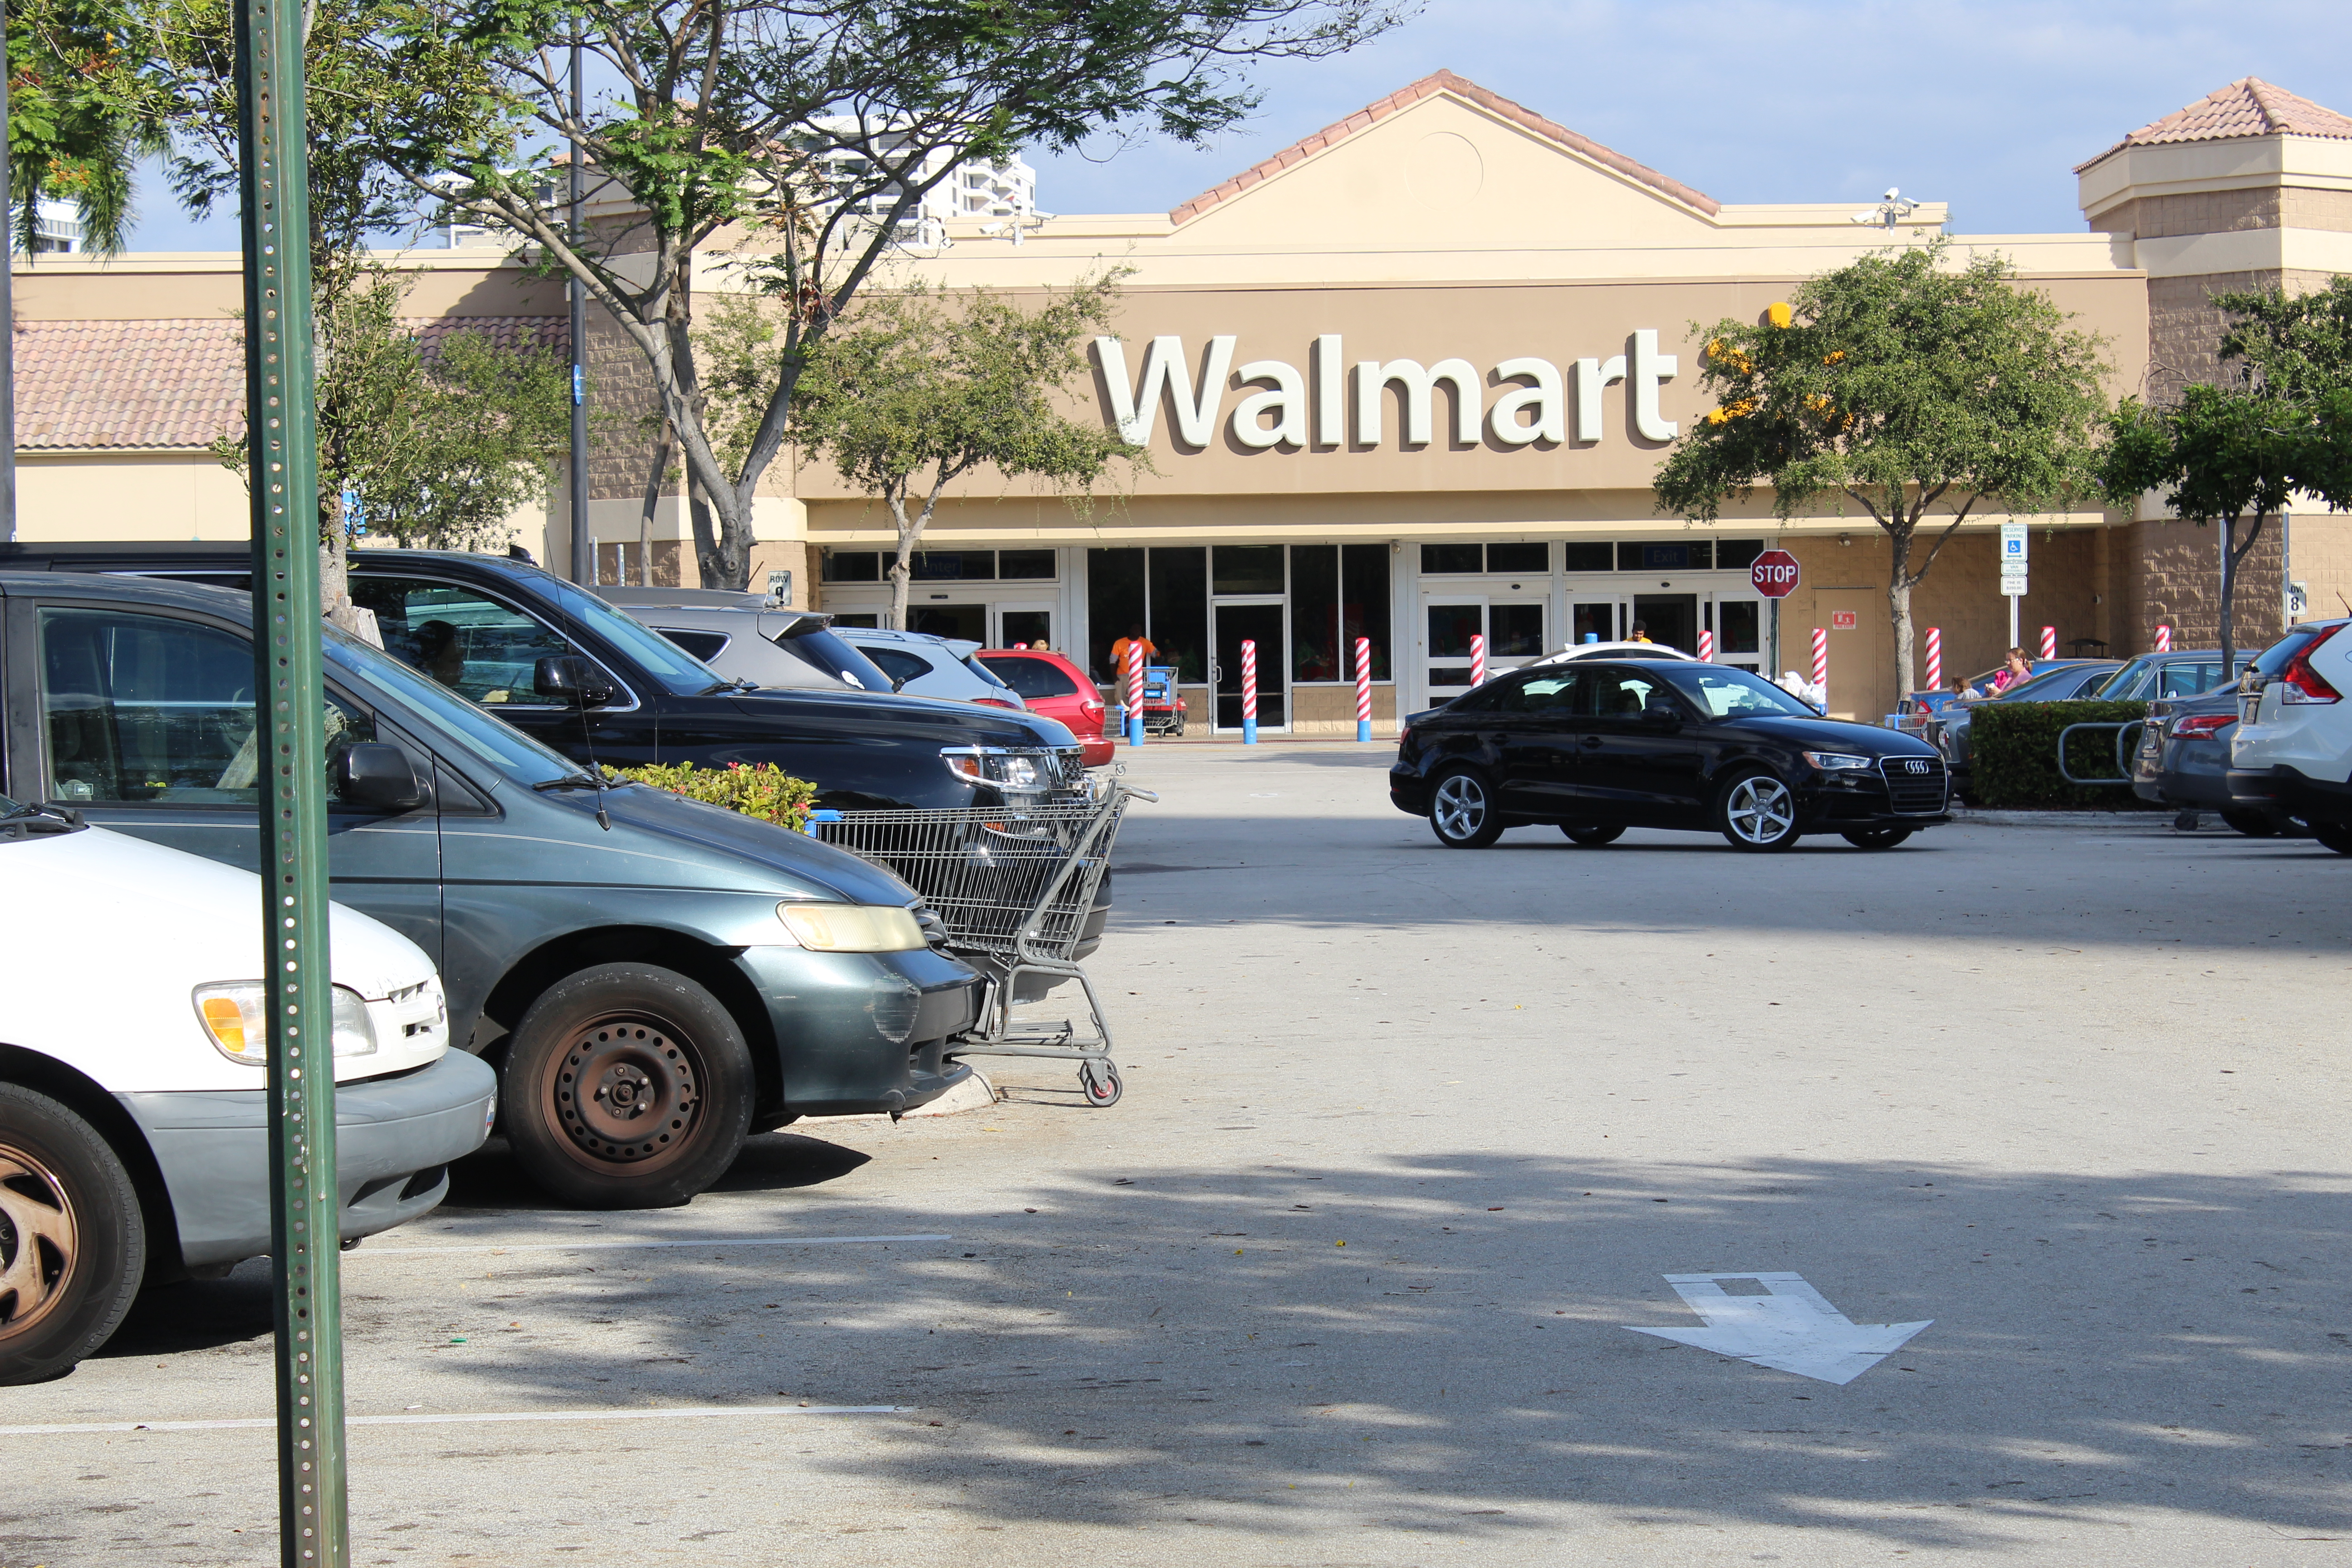 View of Walmart on Hallandale Beach Boulevard